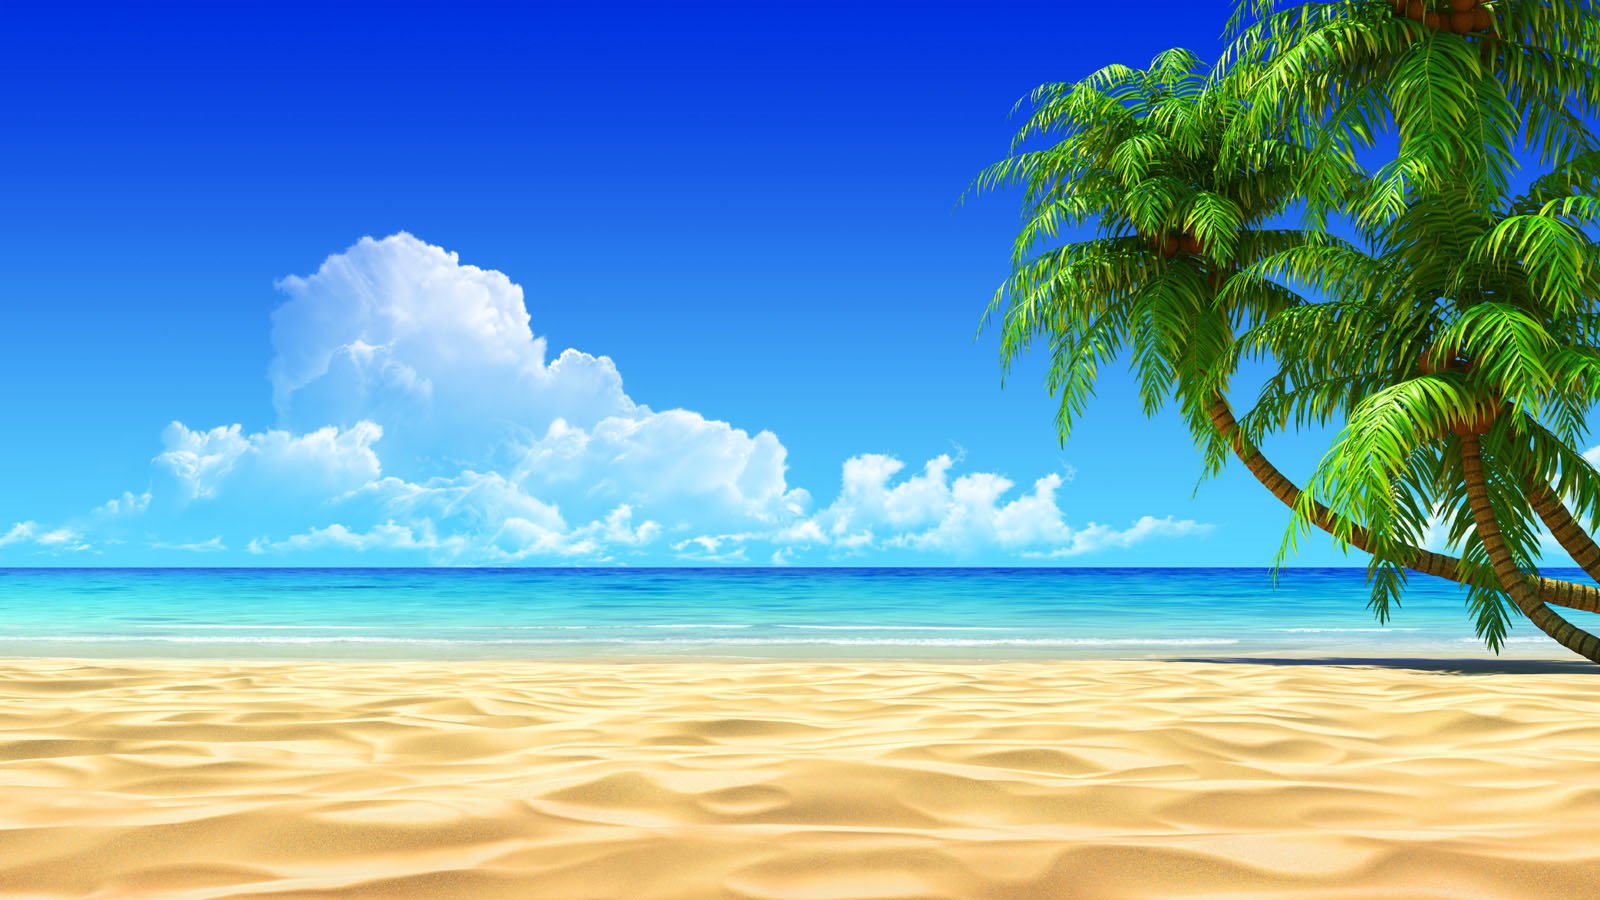 Download free HD Beach 3d Art Wallpaper, image